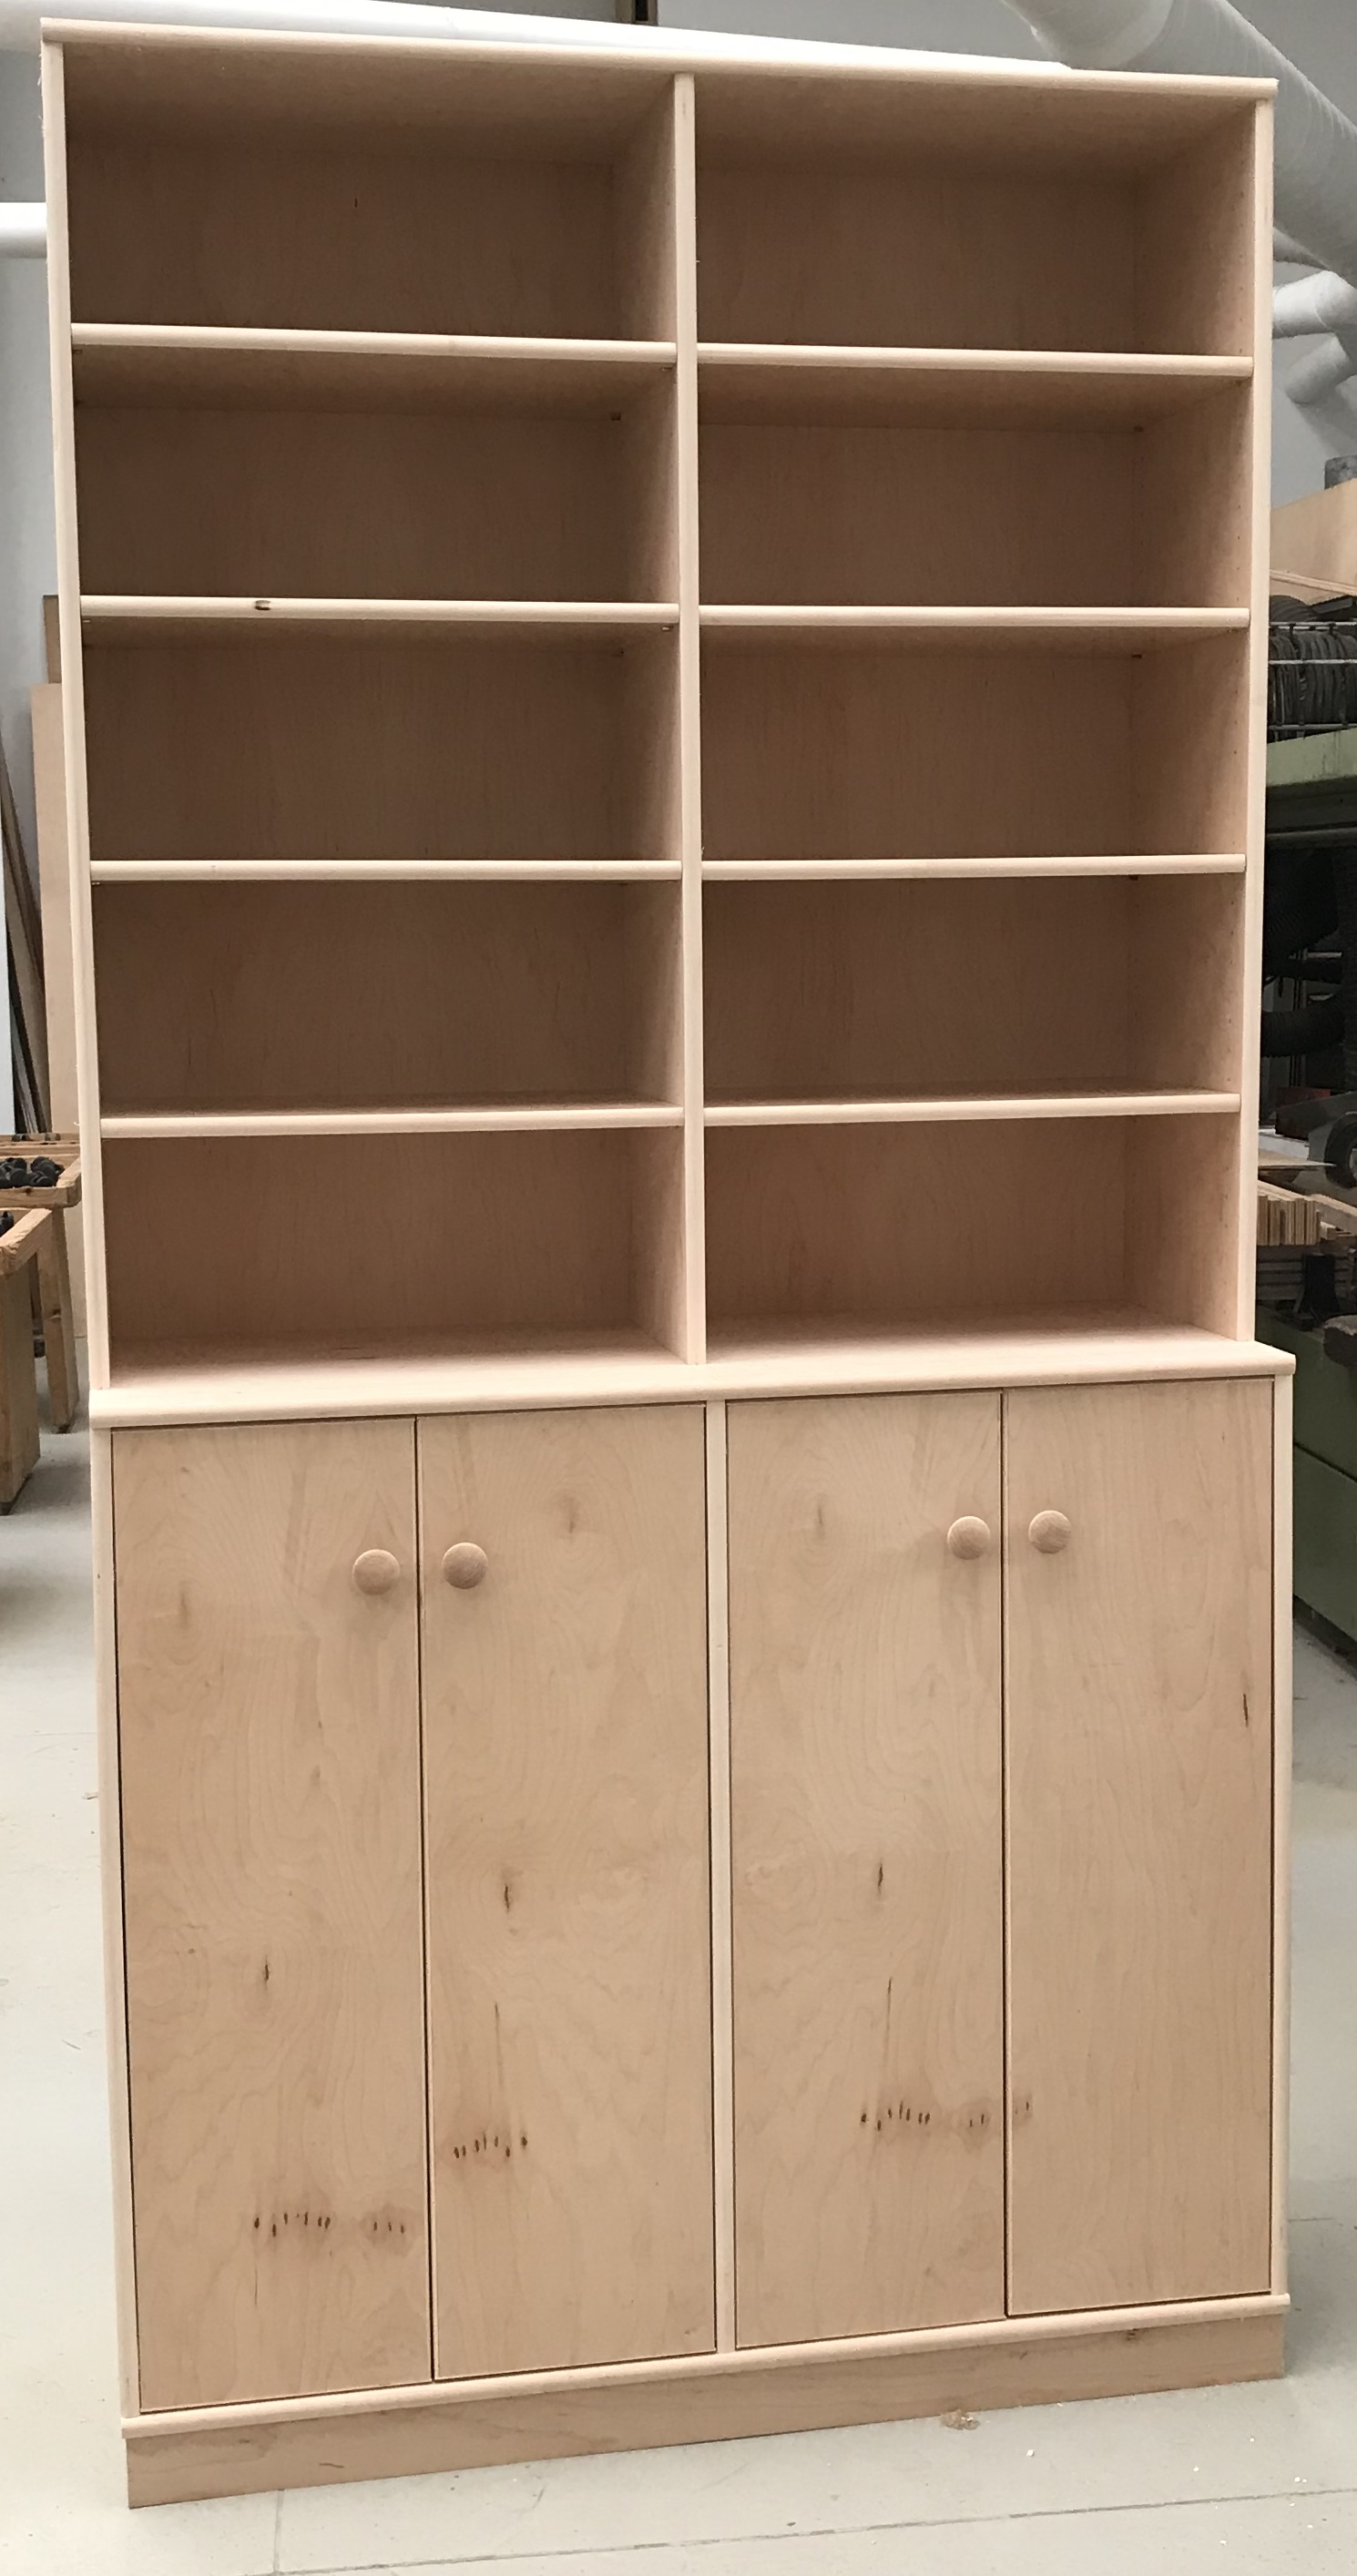 8 foot tall maple stereo cabinet showing slide shelf